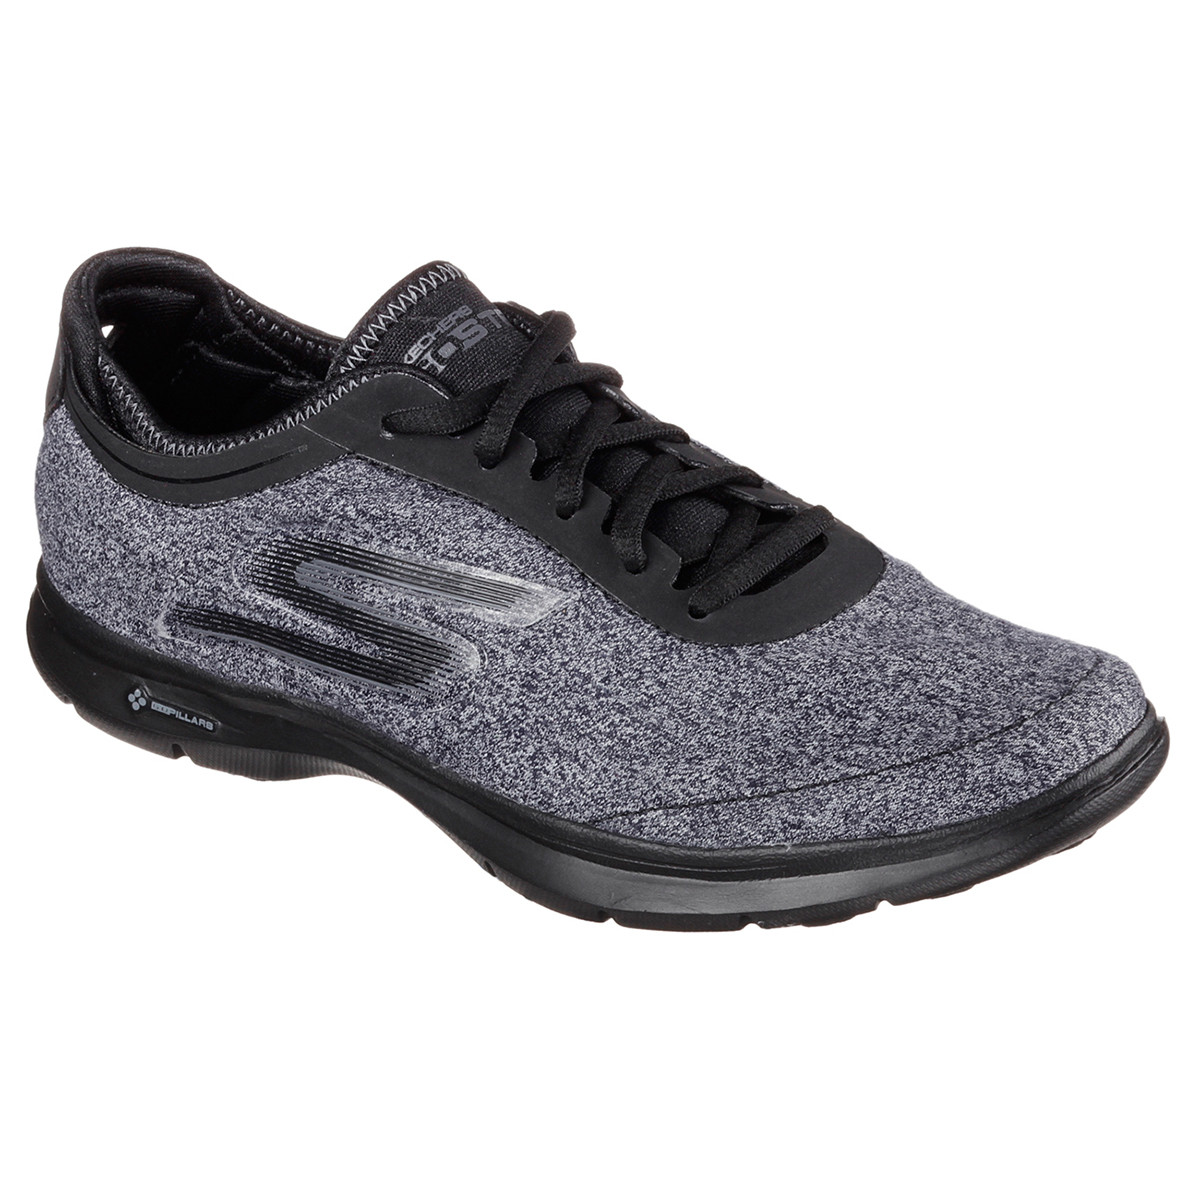 Skechers Go Step Vital Chaussure Femme  - Chaussures Fitness Femme